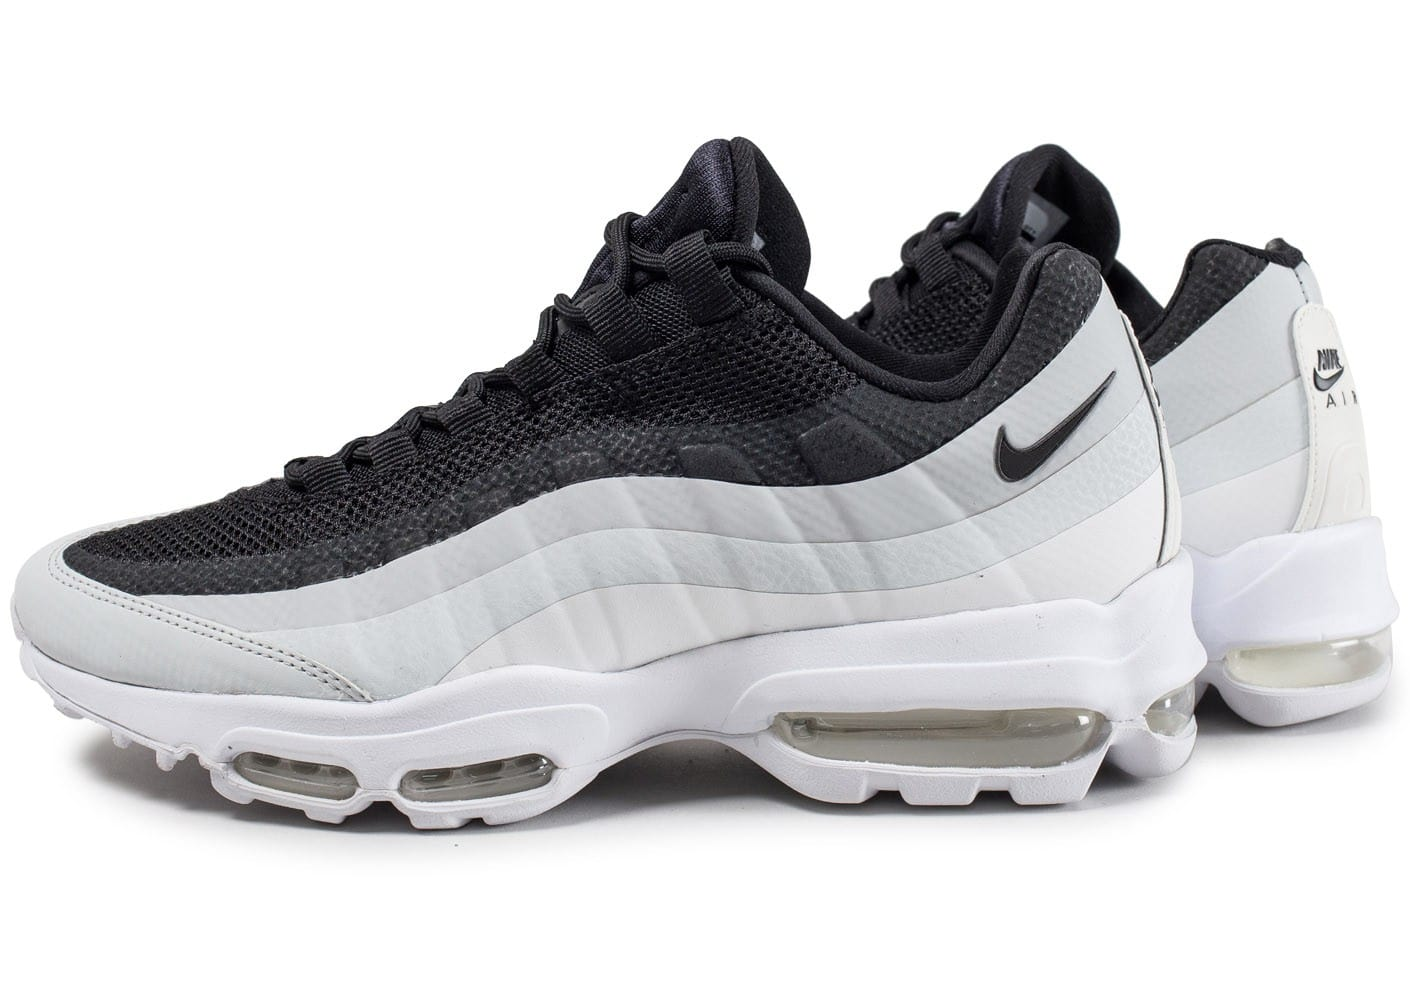 nike air max 95 essential noire et blanche chaussures. Black Bedroom Furniture Sets. Home Design Ideas